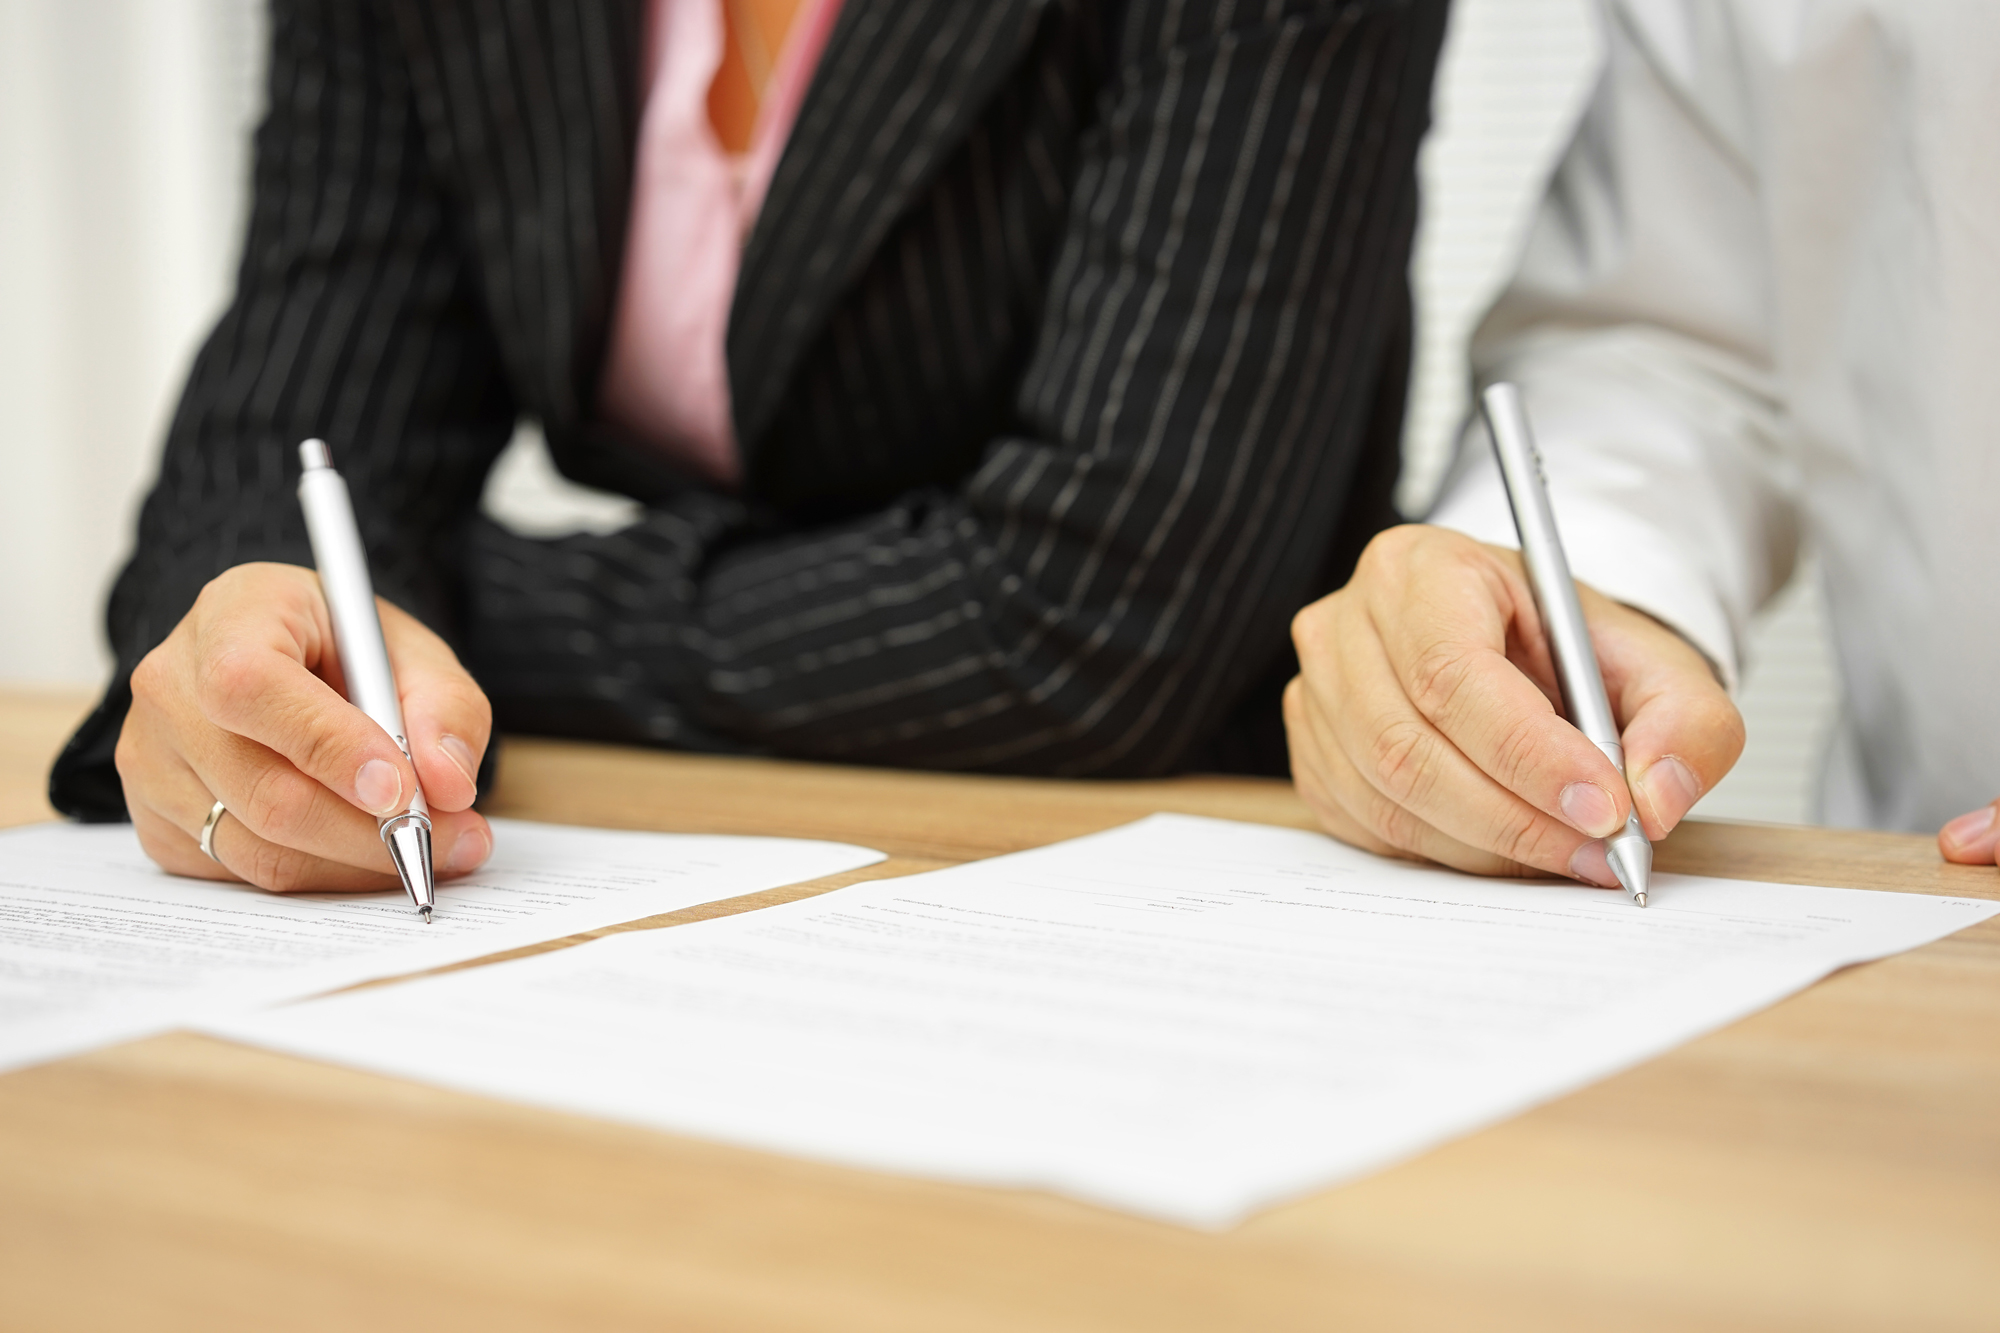 Two people in business attire sign paperwork